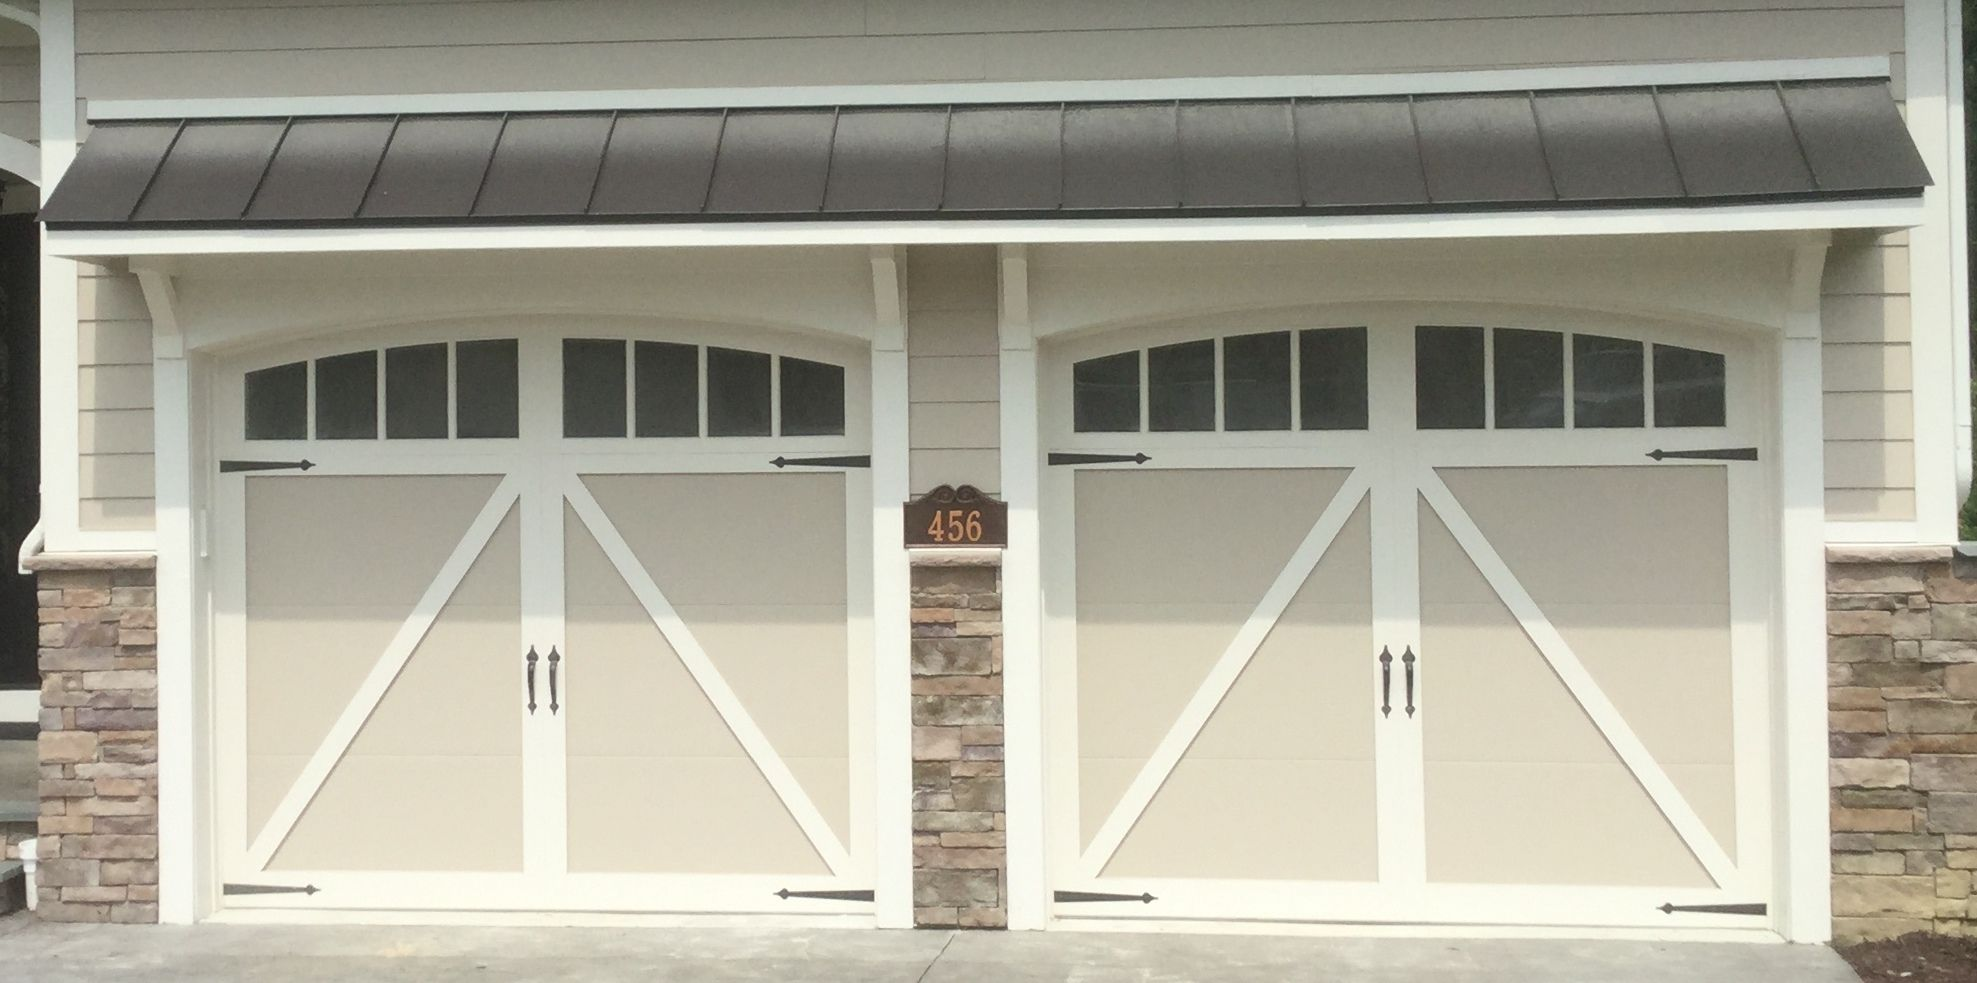 Classica northampton garage door white 9 x 8 no windows - Two 9x8 Model 5333 Carriage House Overlay Garage Doors With Arched Madison Top Glass Spade